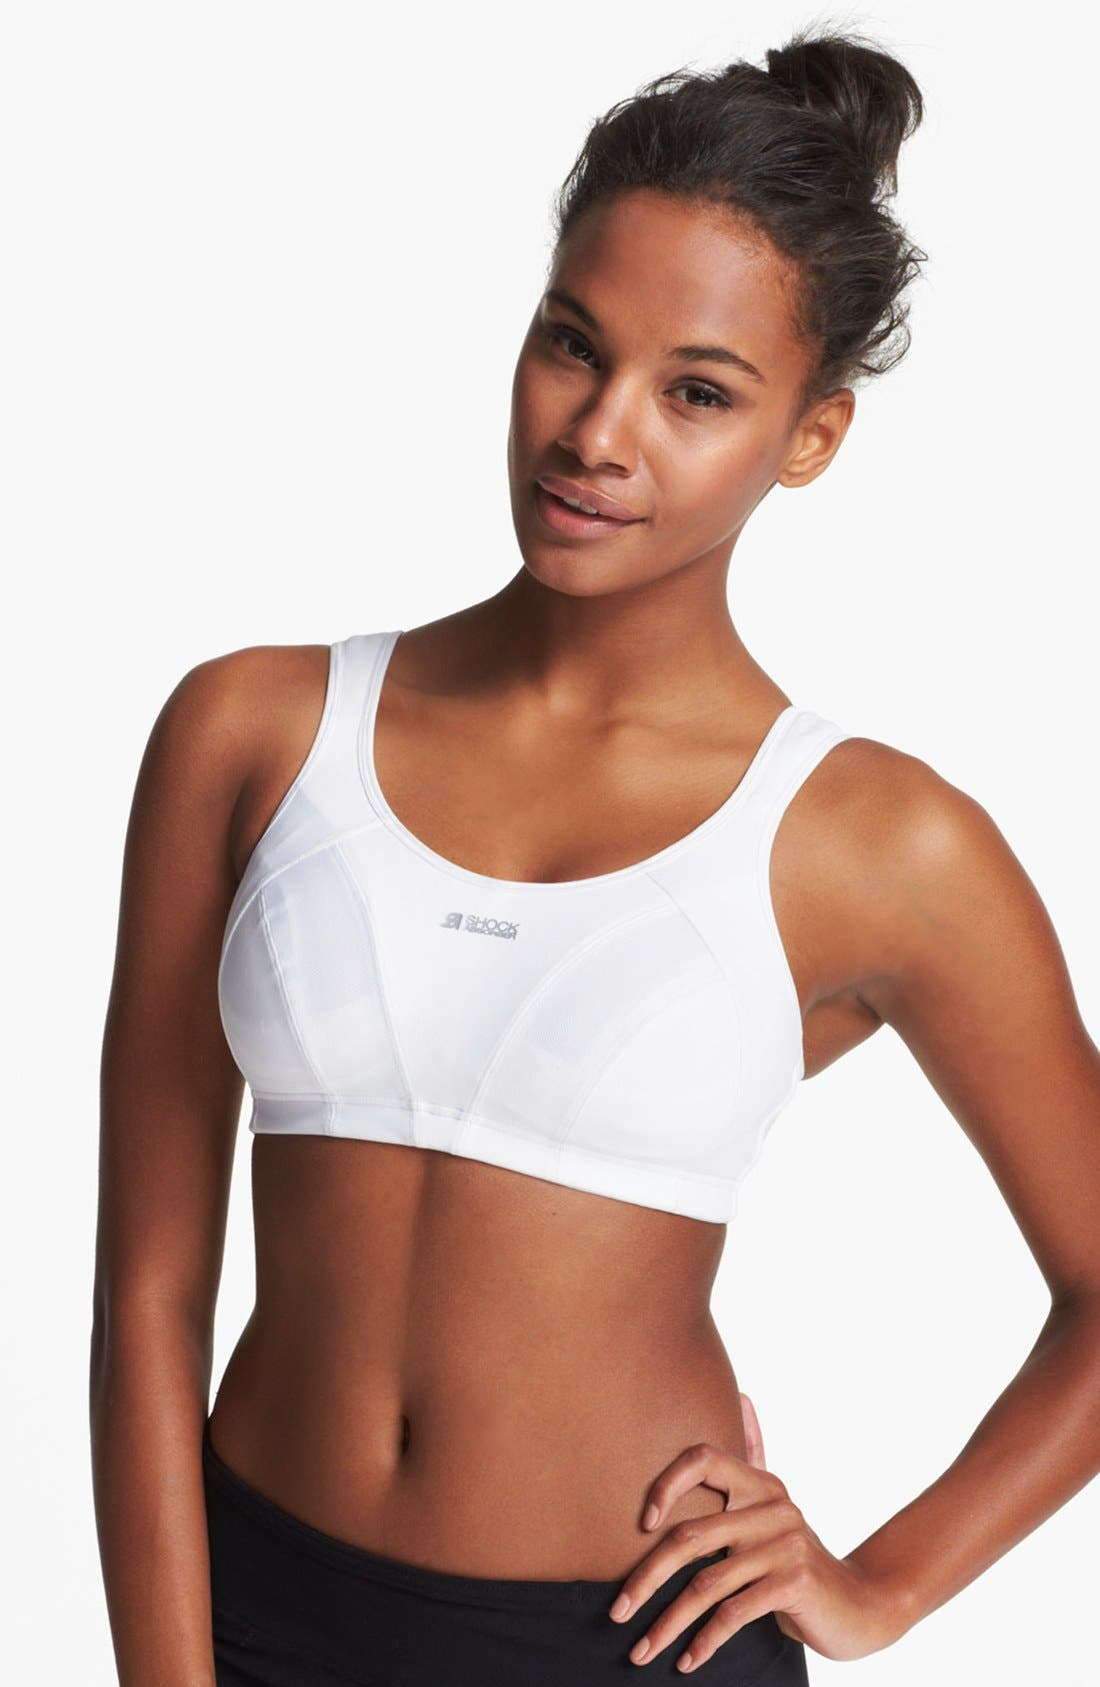 Alternate Image 1 Selected - Shock Absorber 'Max Support' Sports Bra